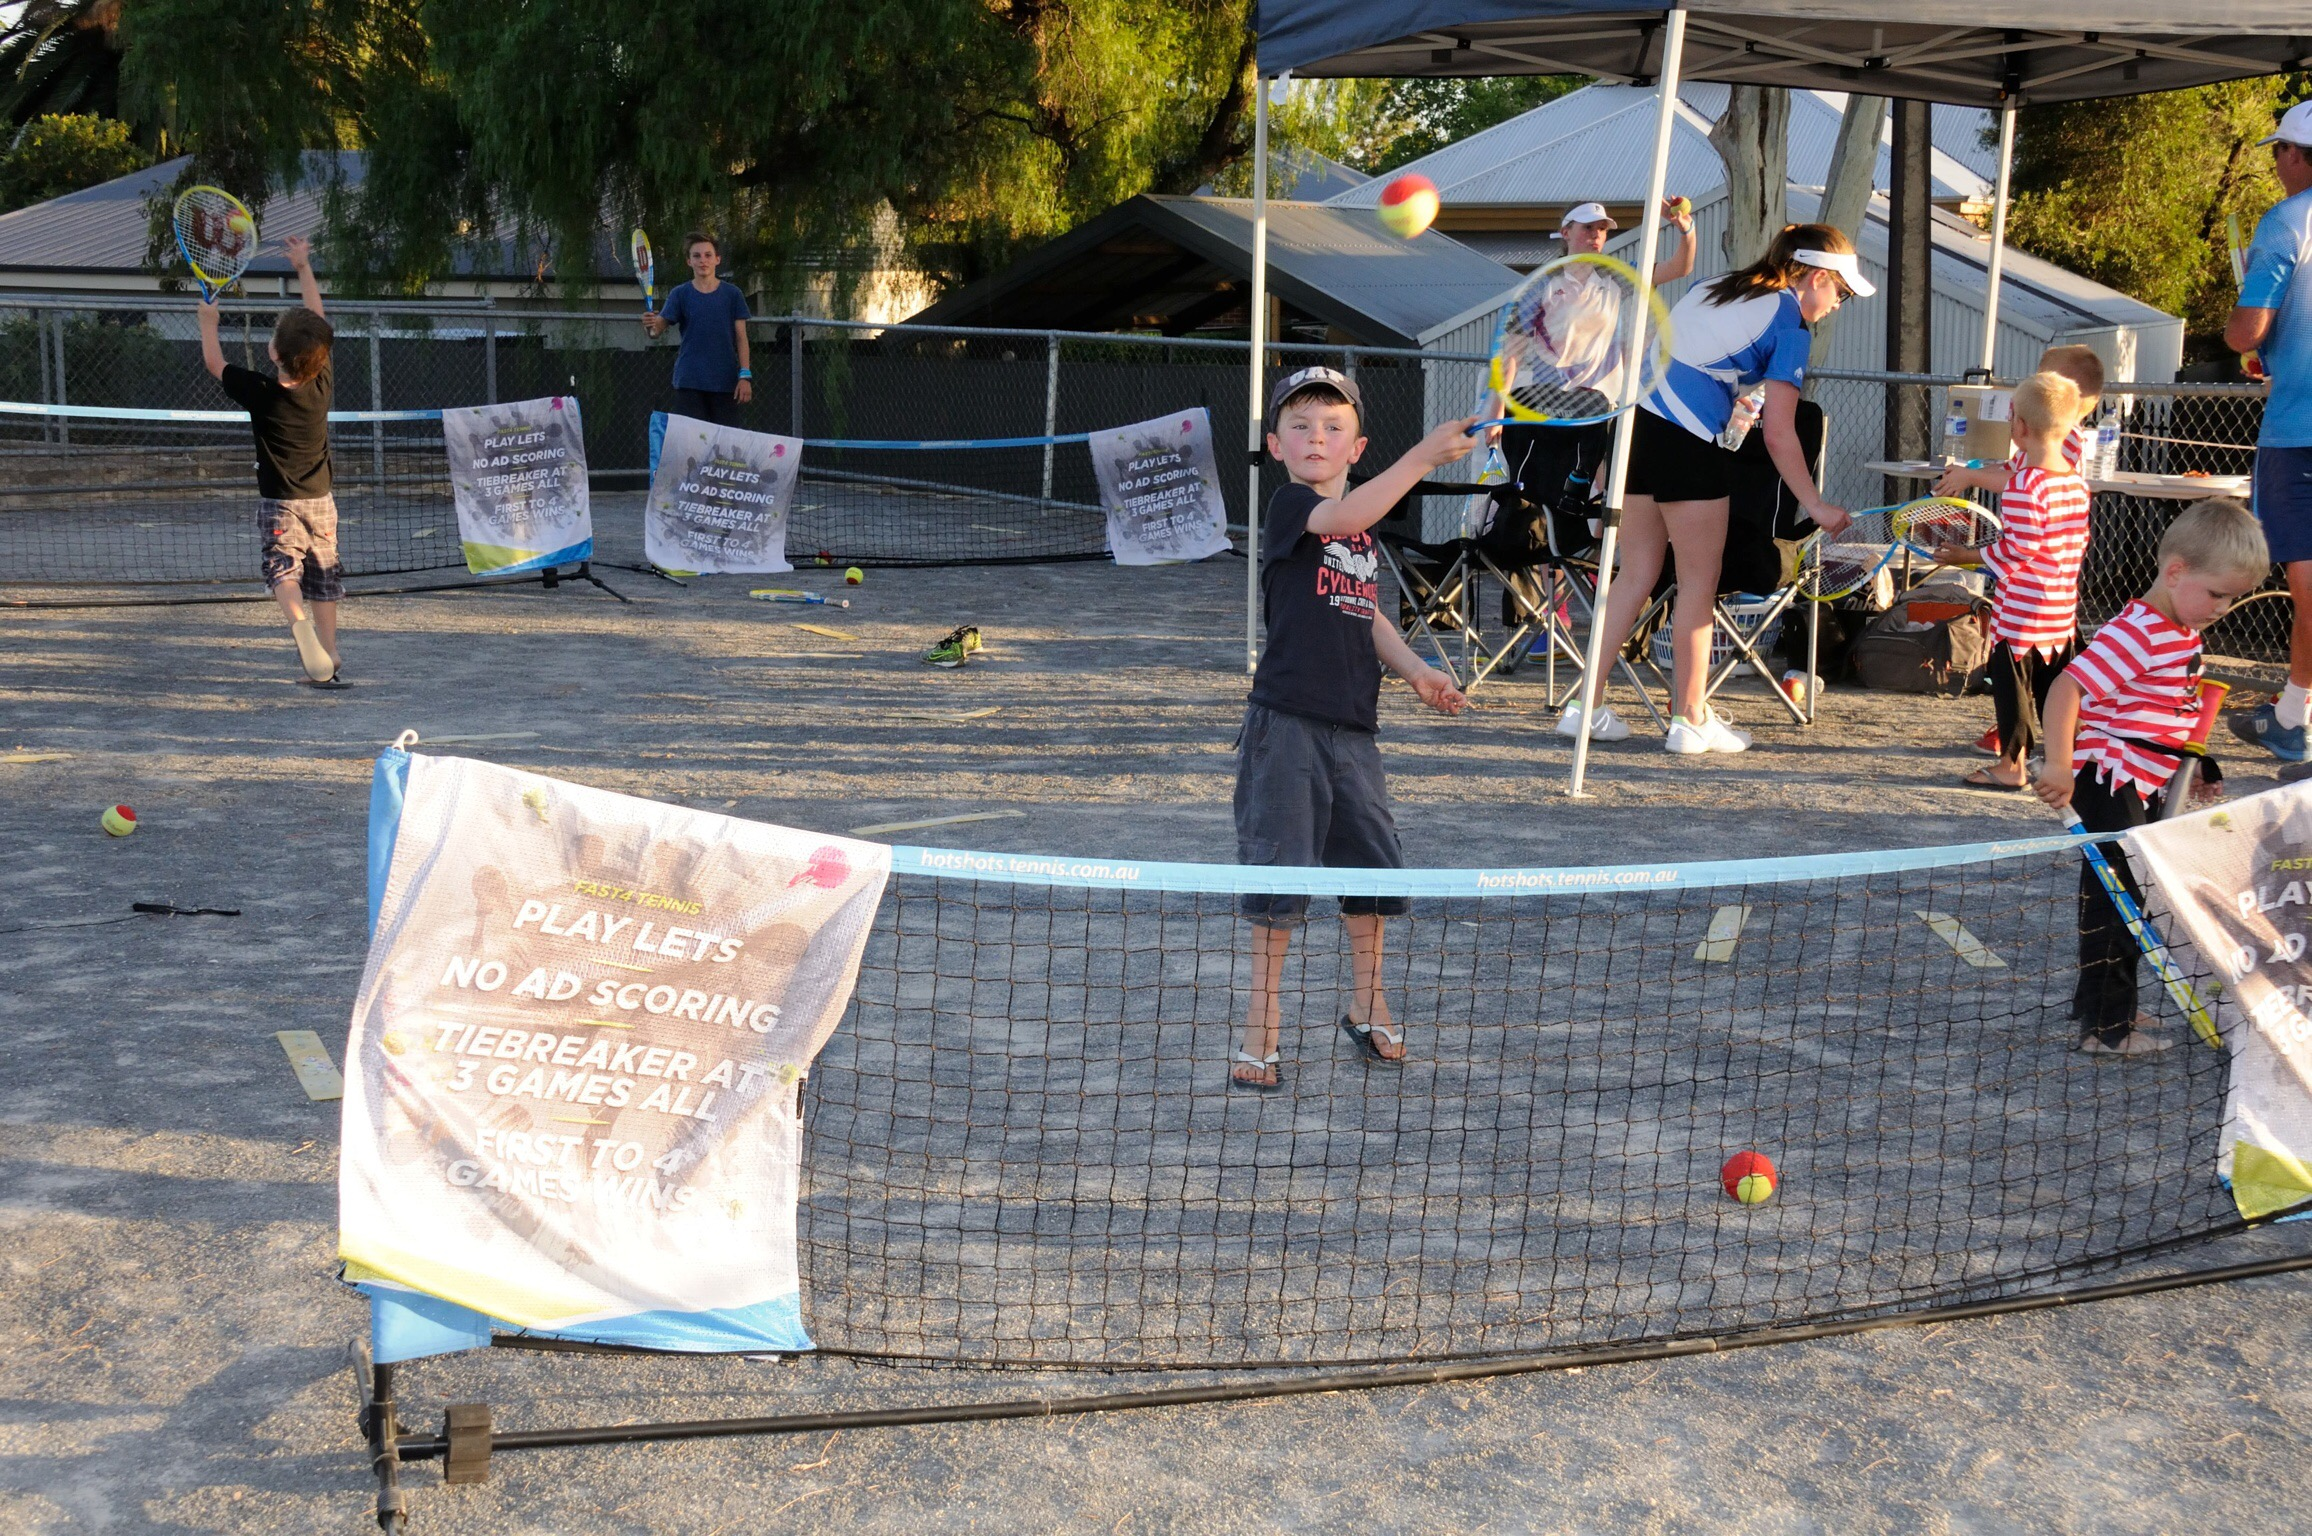 The Hot Shots Tennis was run by Mr Tennis with some budding new tennis champions identified.